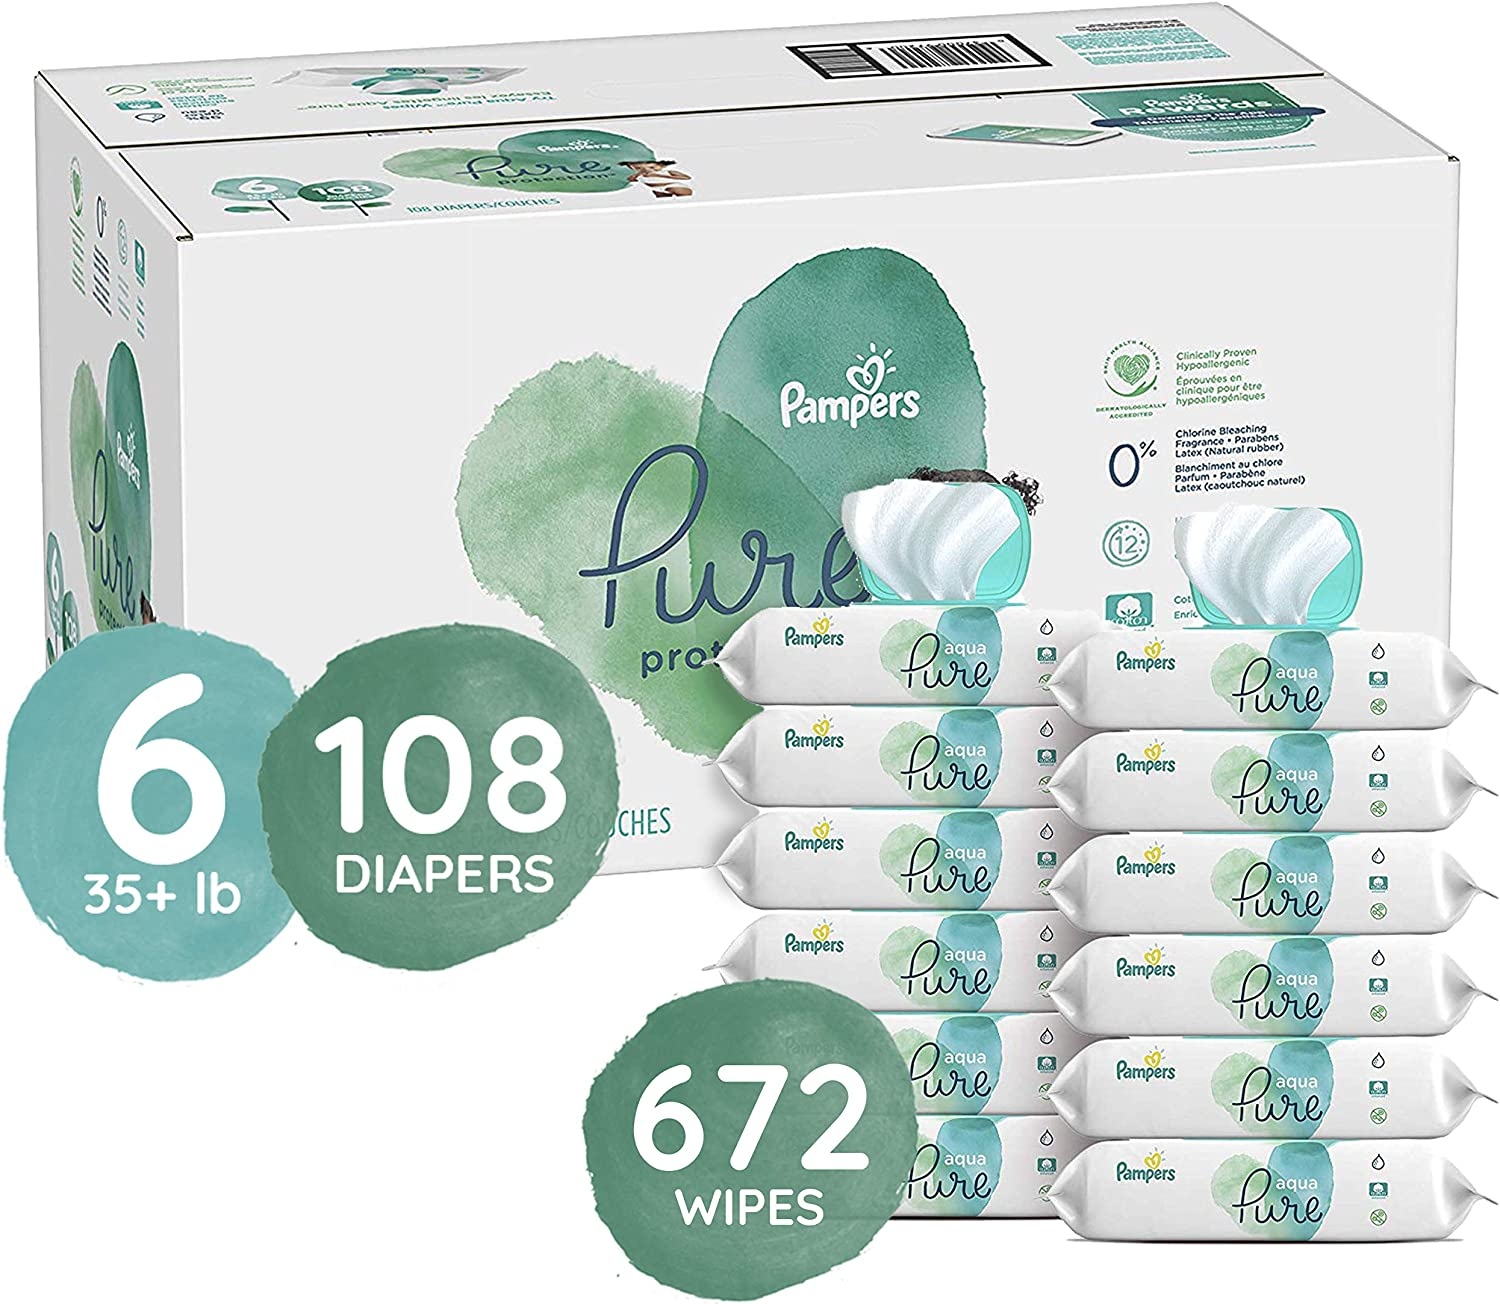 Diapers Size 6, 108 Count and Baby Wipes - Pampers Pure Protection Disposable Baby Diapers, ONE MONTH SUPPLY with Pampers Aqua Pure Sensitive Wipes, 12X Pop-Top Packs, 672 Count (Packaging May Vary)